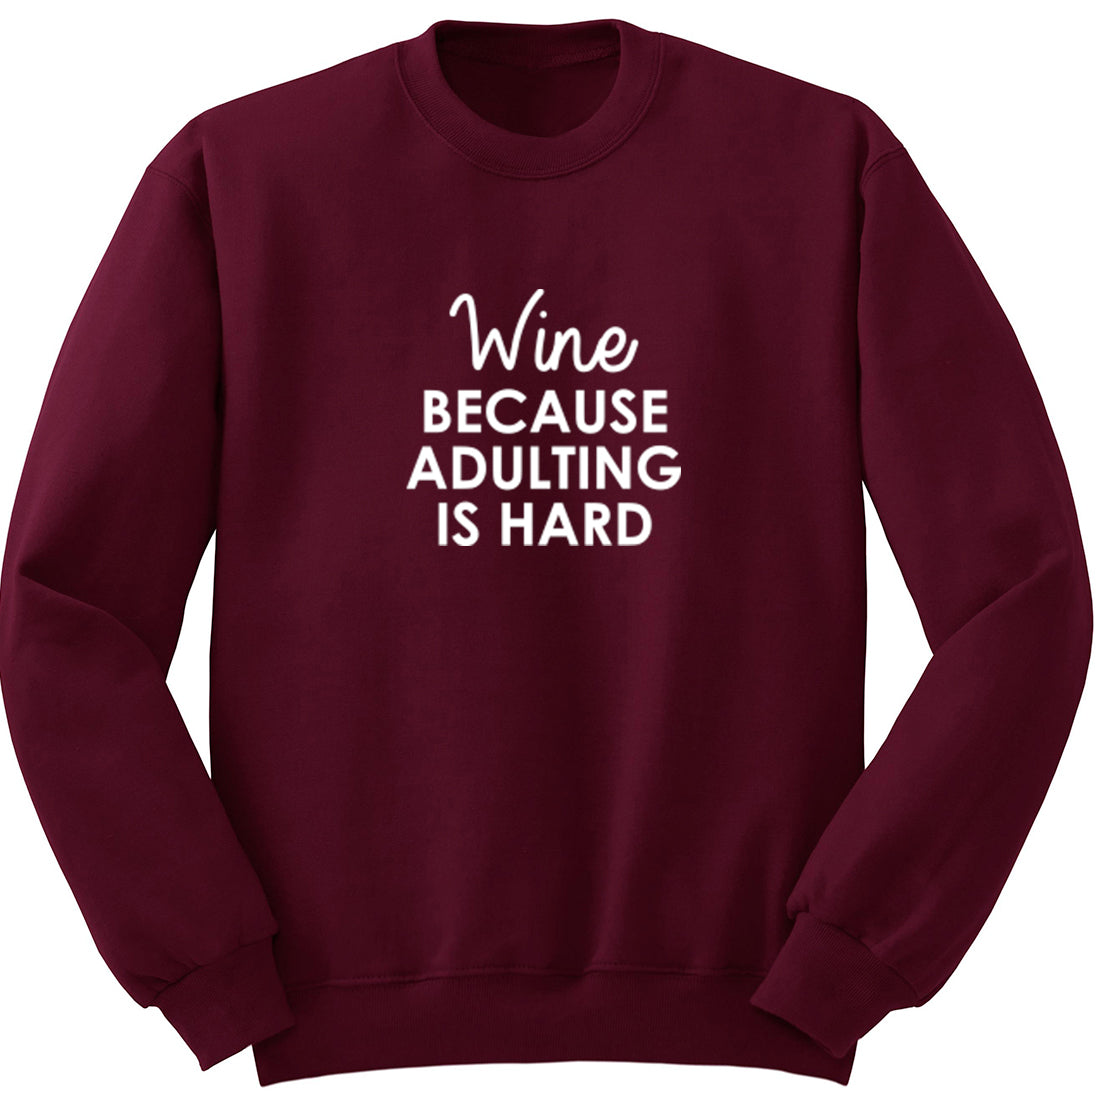 Wine Because Adulting Is Hard Unisex Jumper K1975 - Illustrated Identity Ltd.